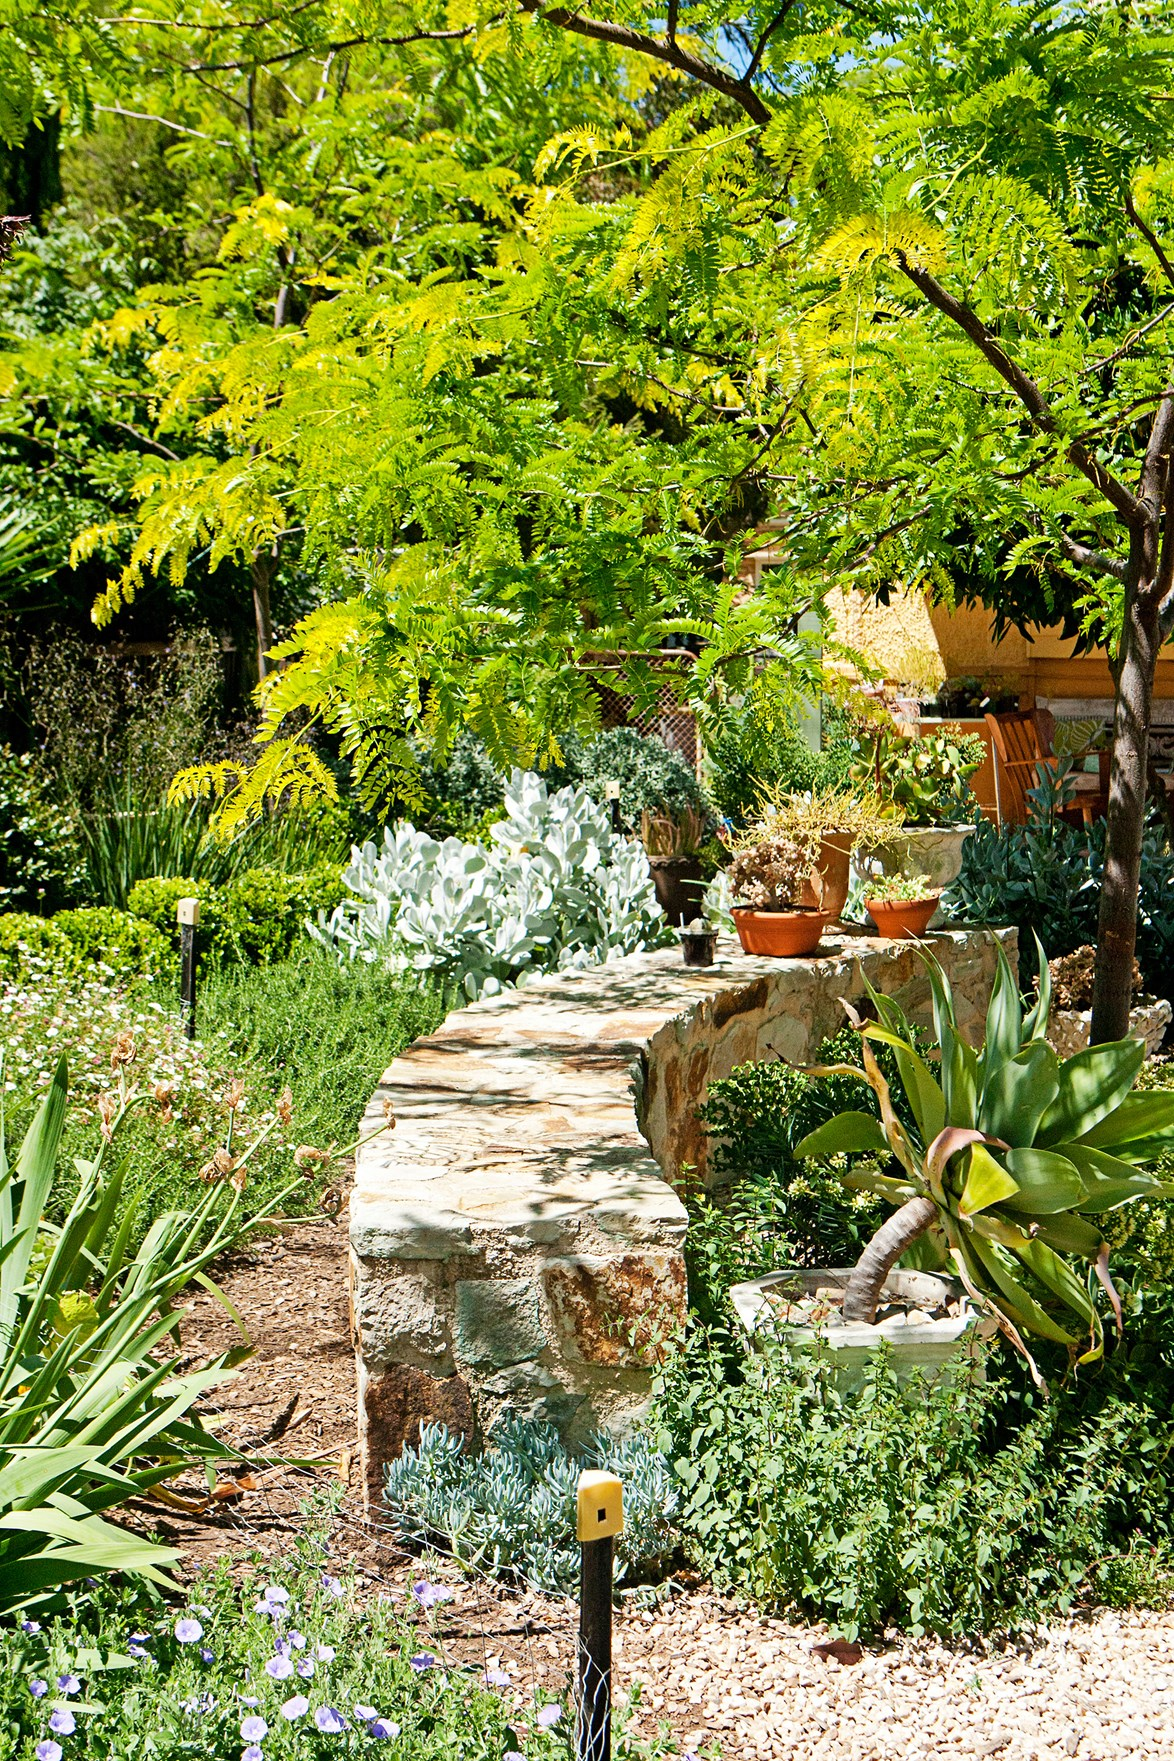 Succulents, agaves and other hardy plants make this garden low-maintenance and drought-tolerant.